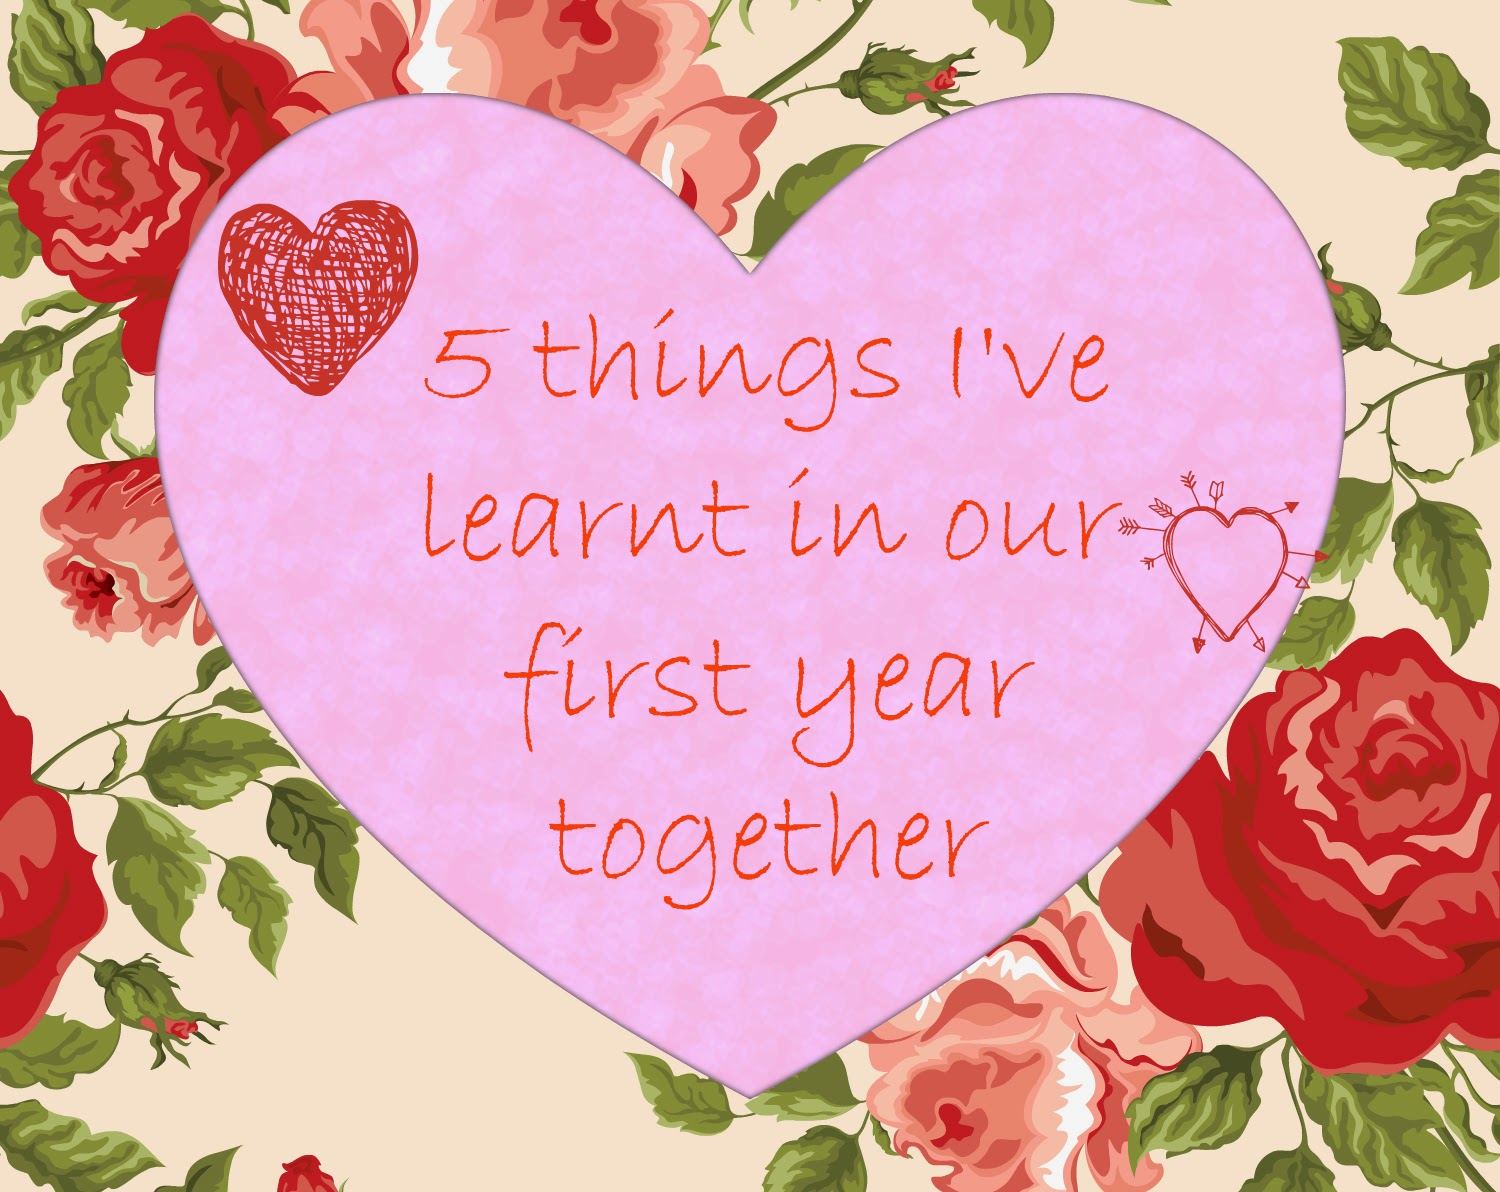 twentea something 5 things i ve learnt in our first year together